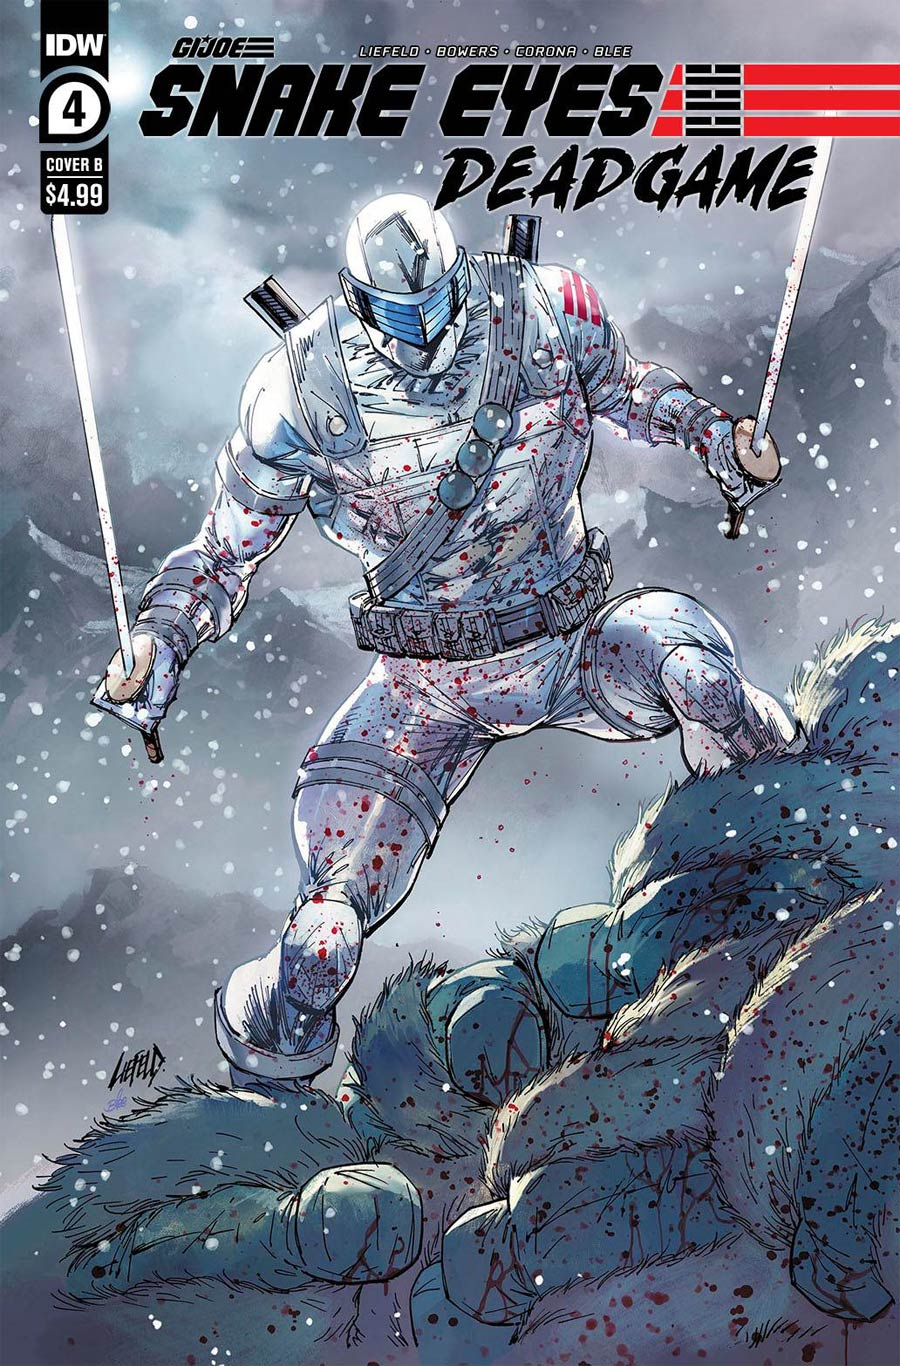 Snake Eyes Deadgame #4 Cover B Variant Rob Liefeld Cover